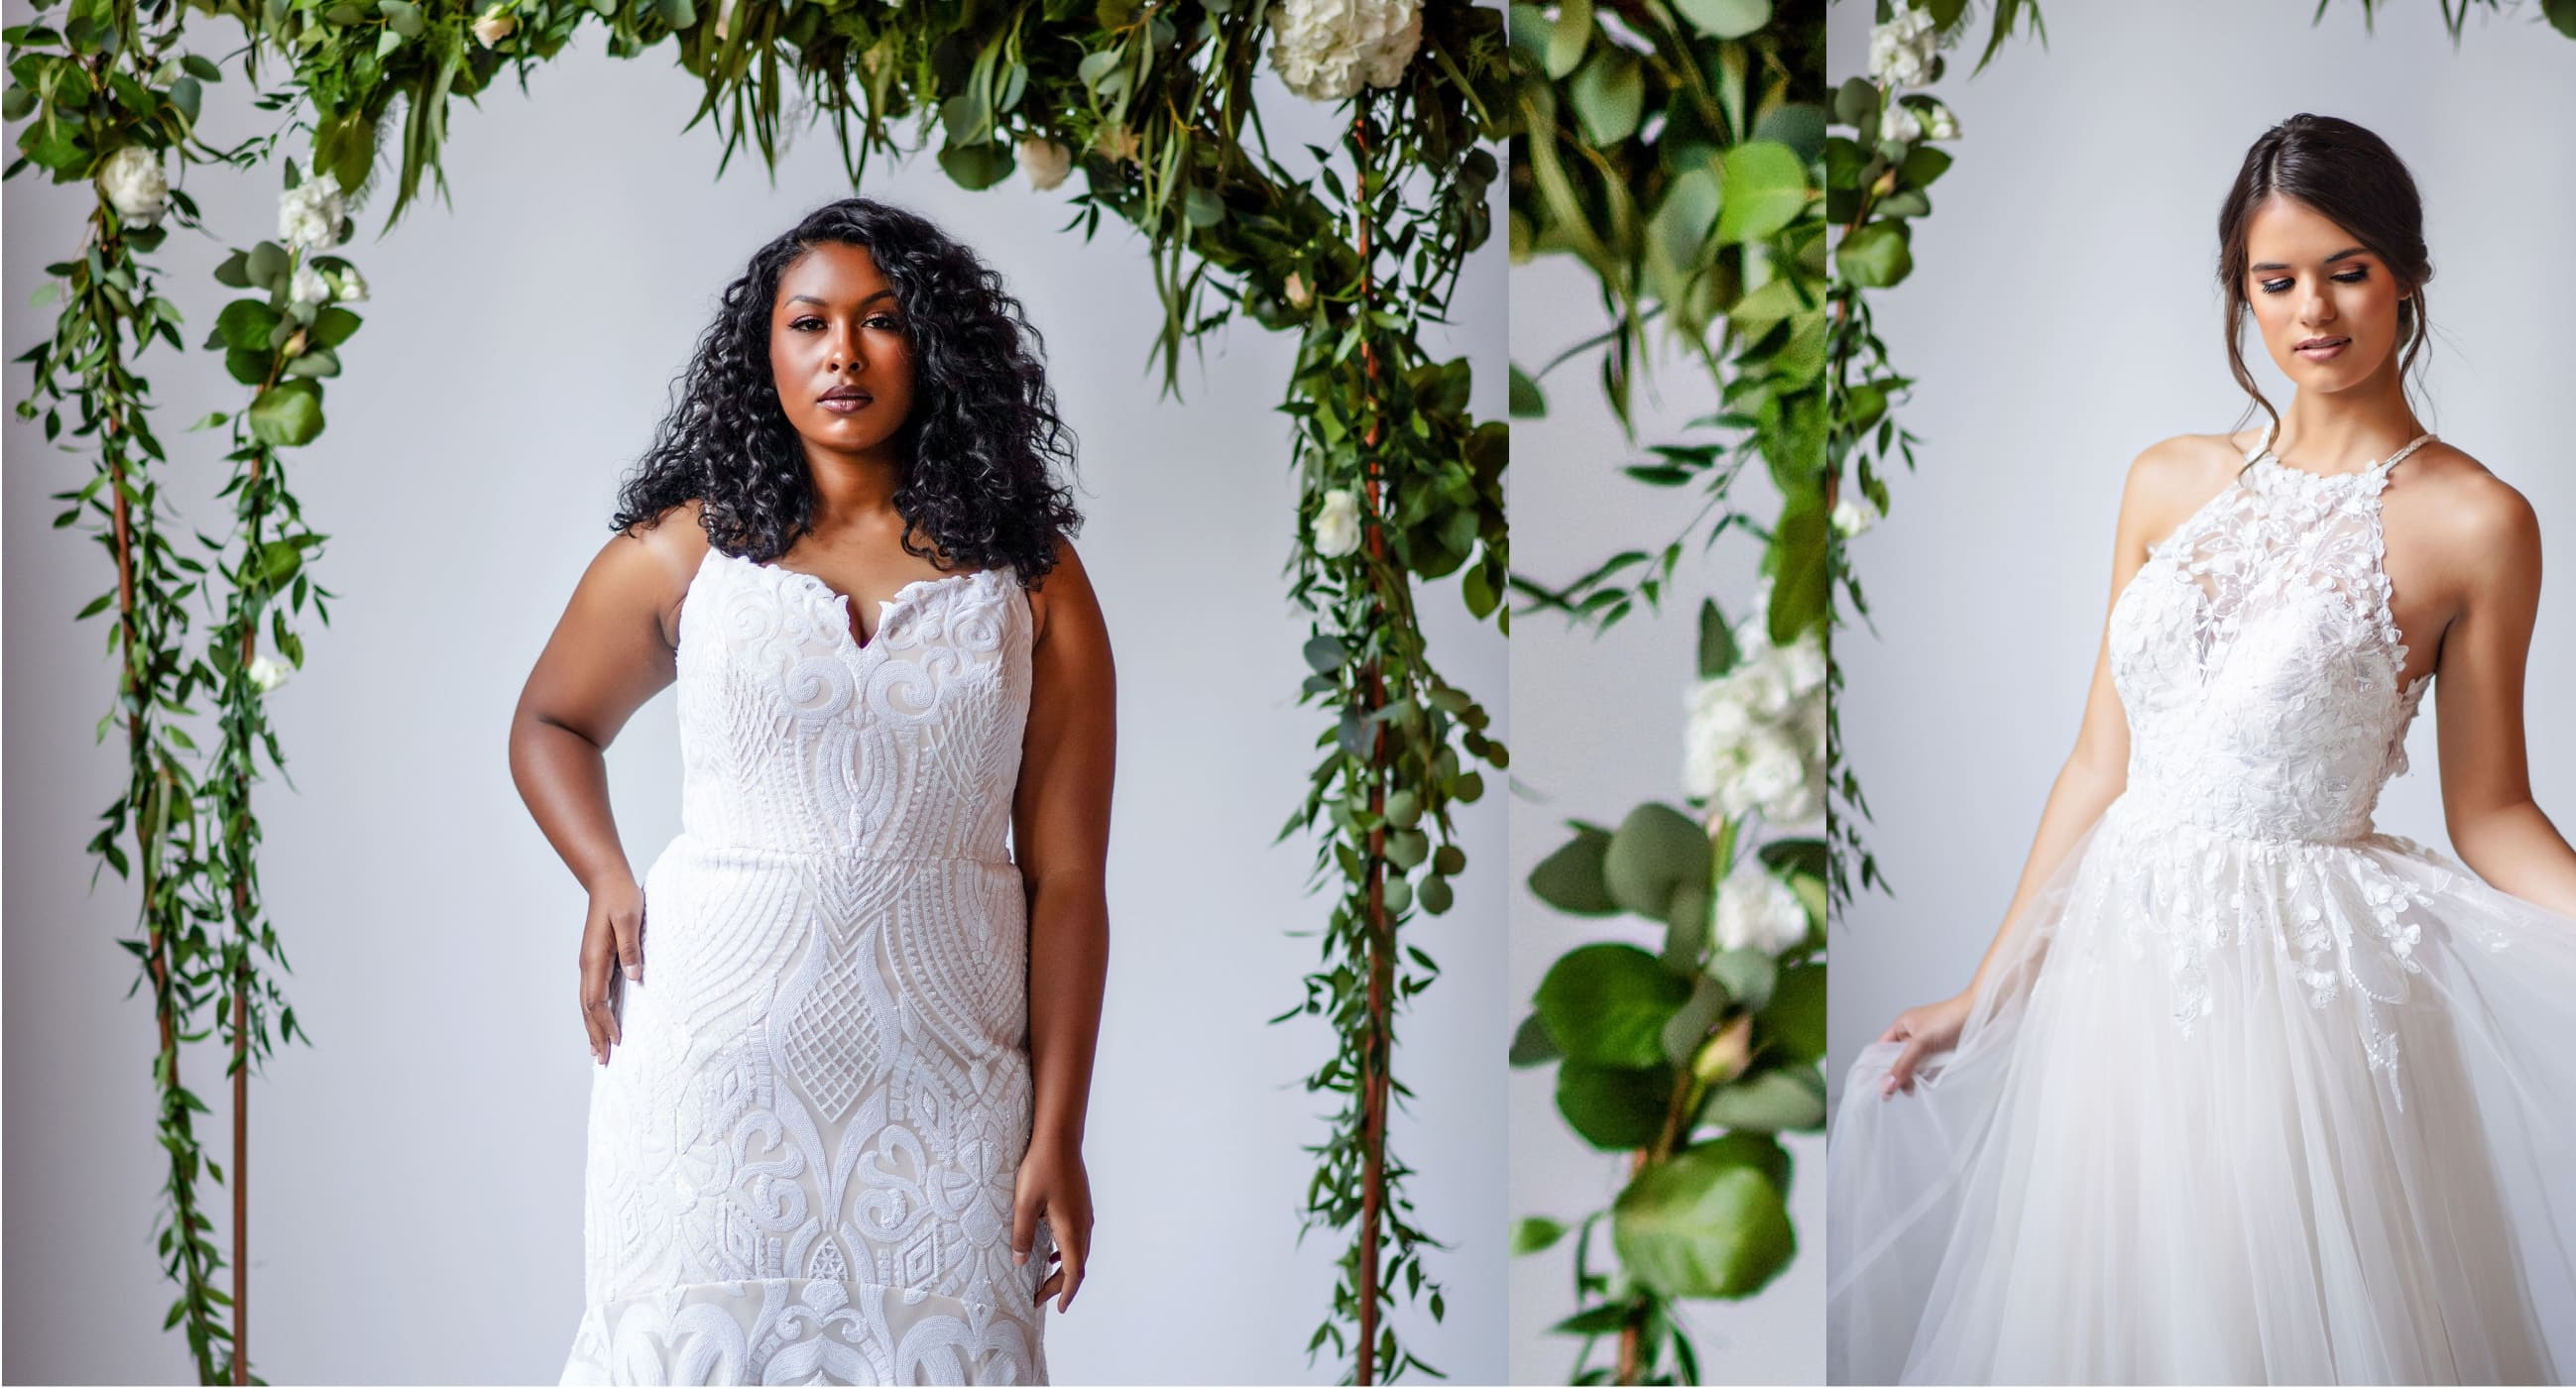 brides in gorgeous, off the rack wedding dresses from here and now bridal in virginia beach